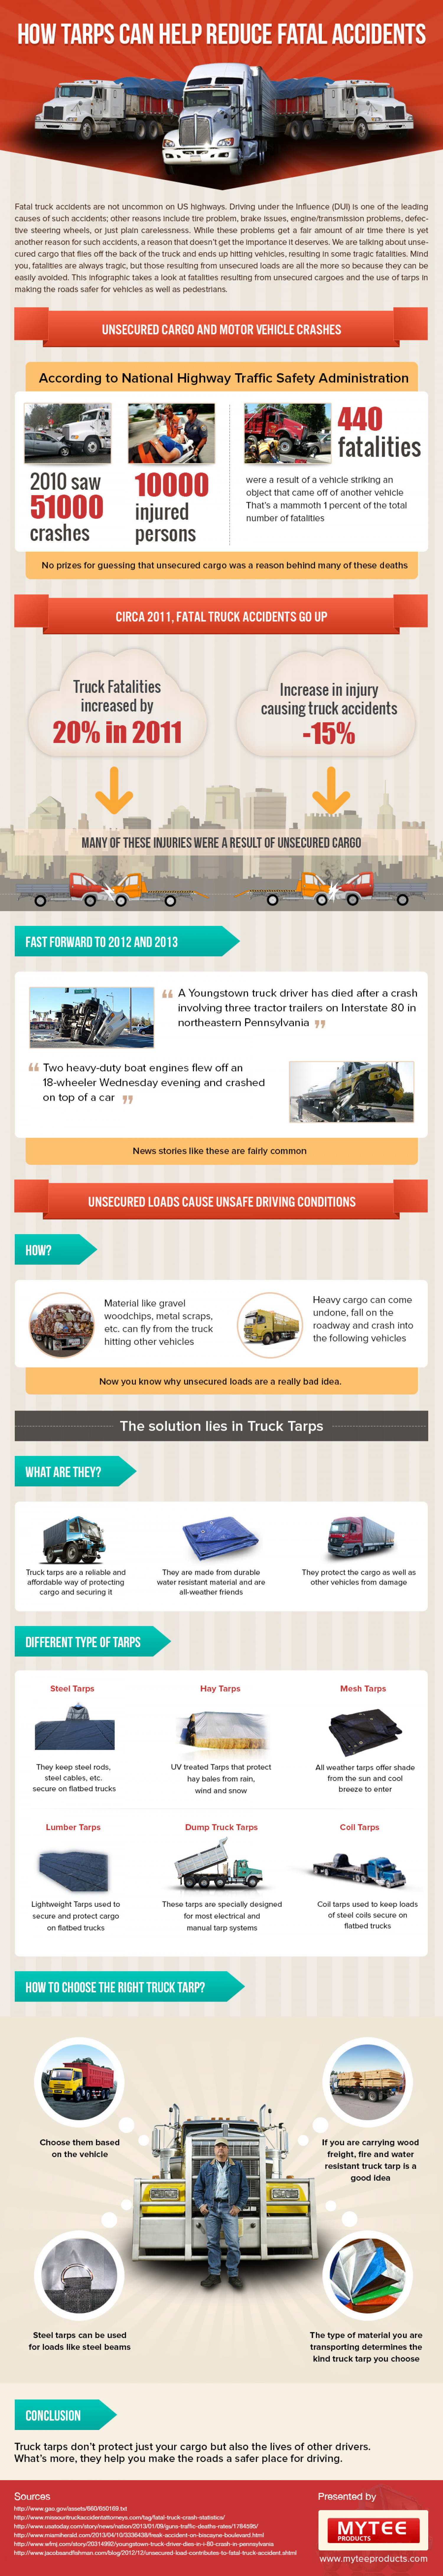 How Tarps Can Help Reduce Fatal Accidents [INFOGRAPHIC] Infographic